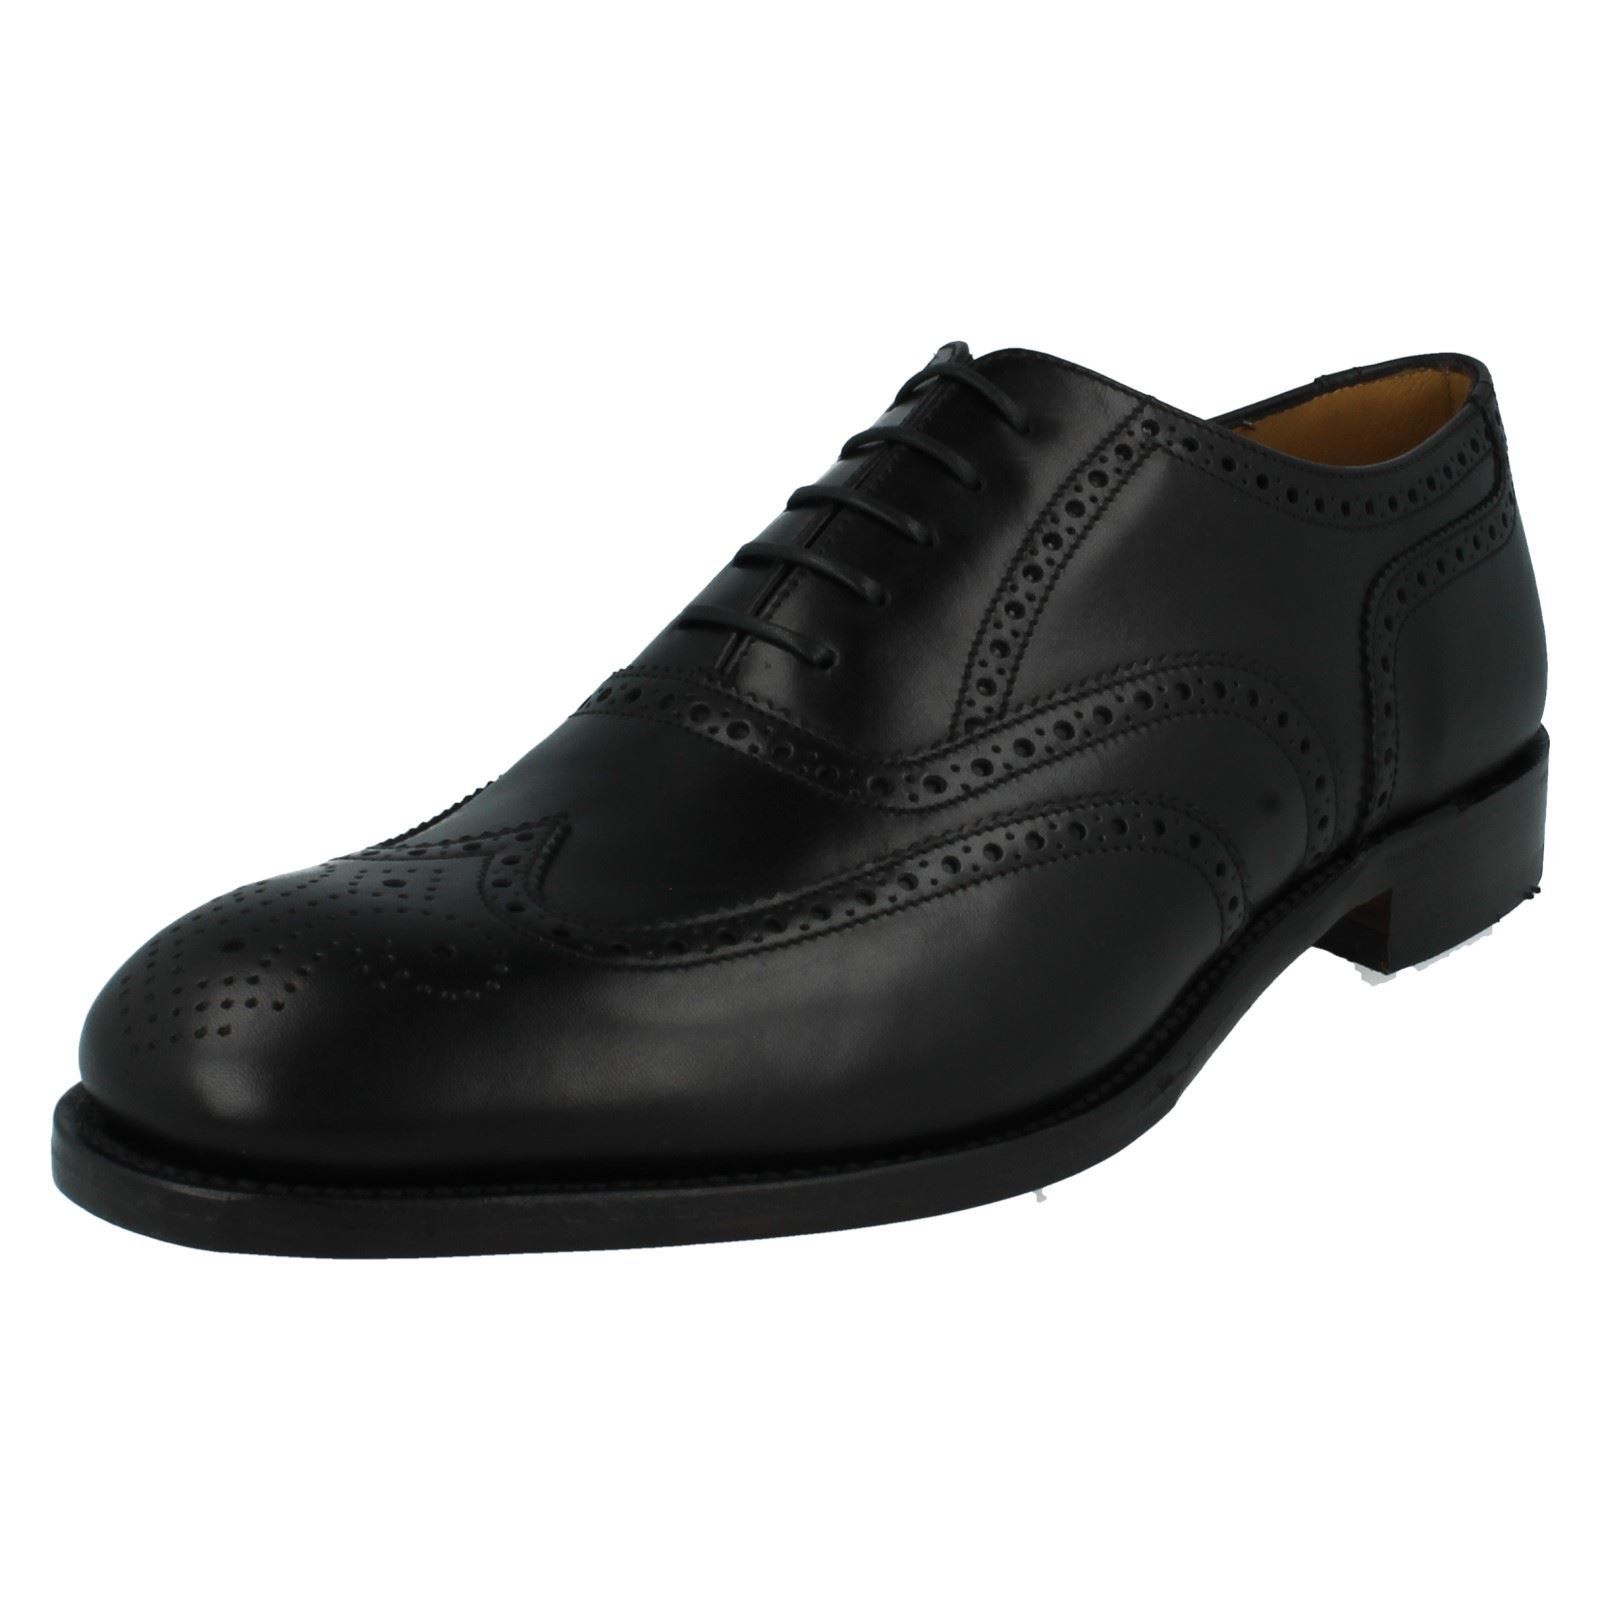 mens loake formal brogue shoes fitting g style severn2